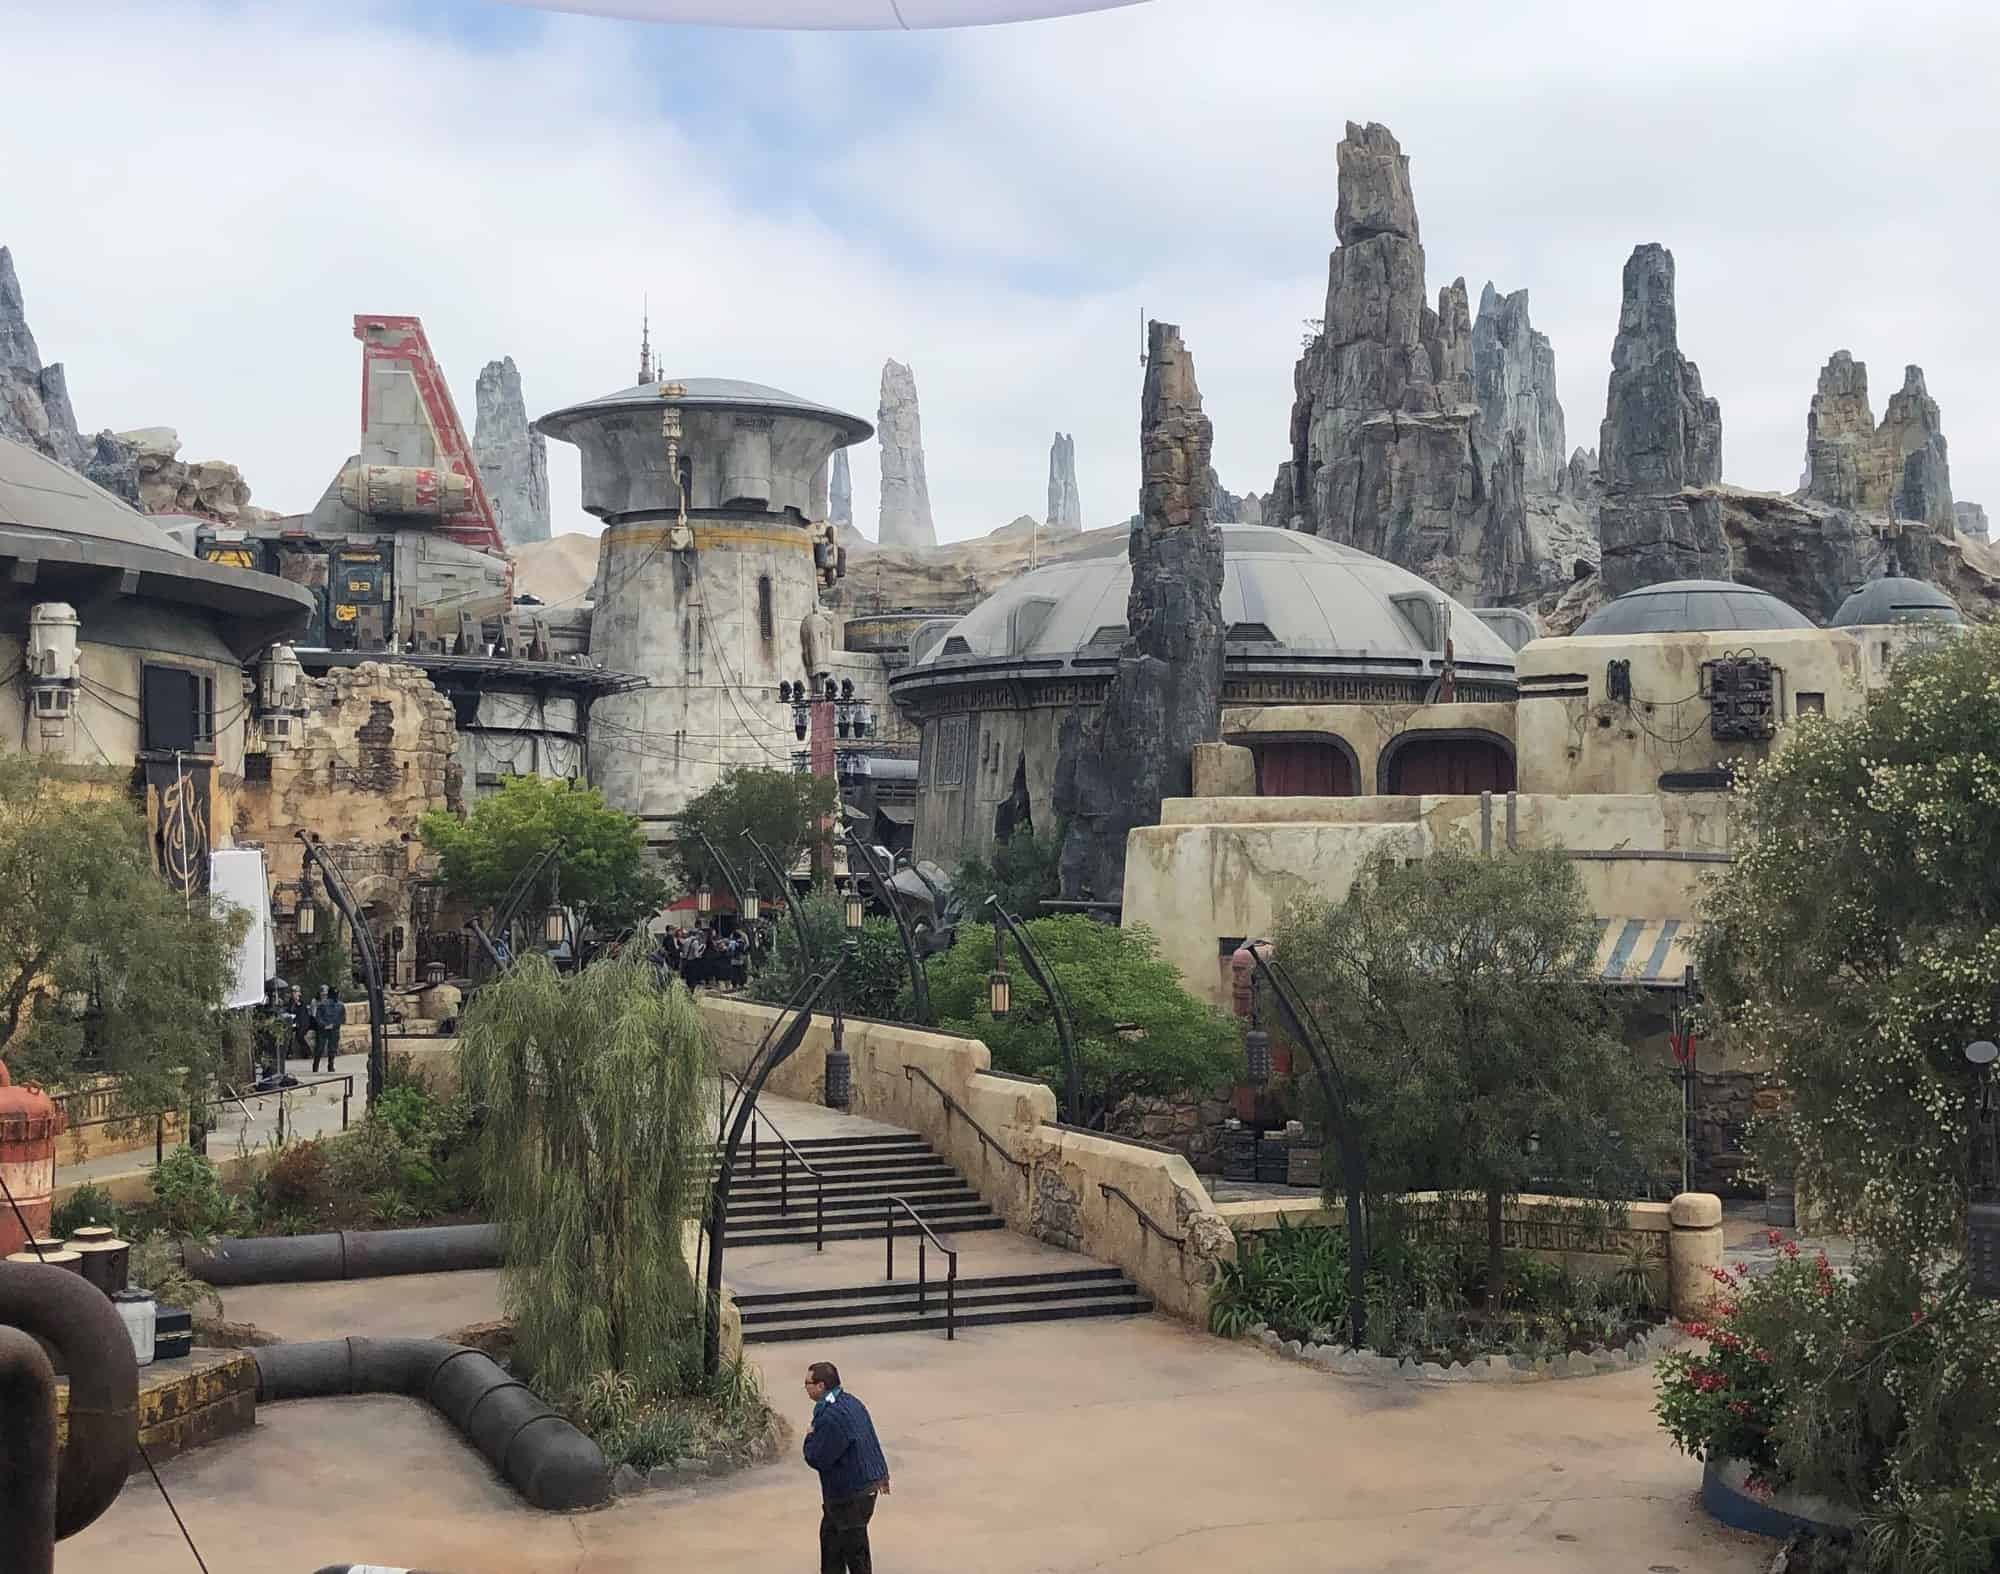 15 Things You Need to Know Before You Go to Star Wars: Galaxy's Edge